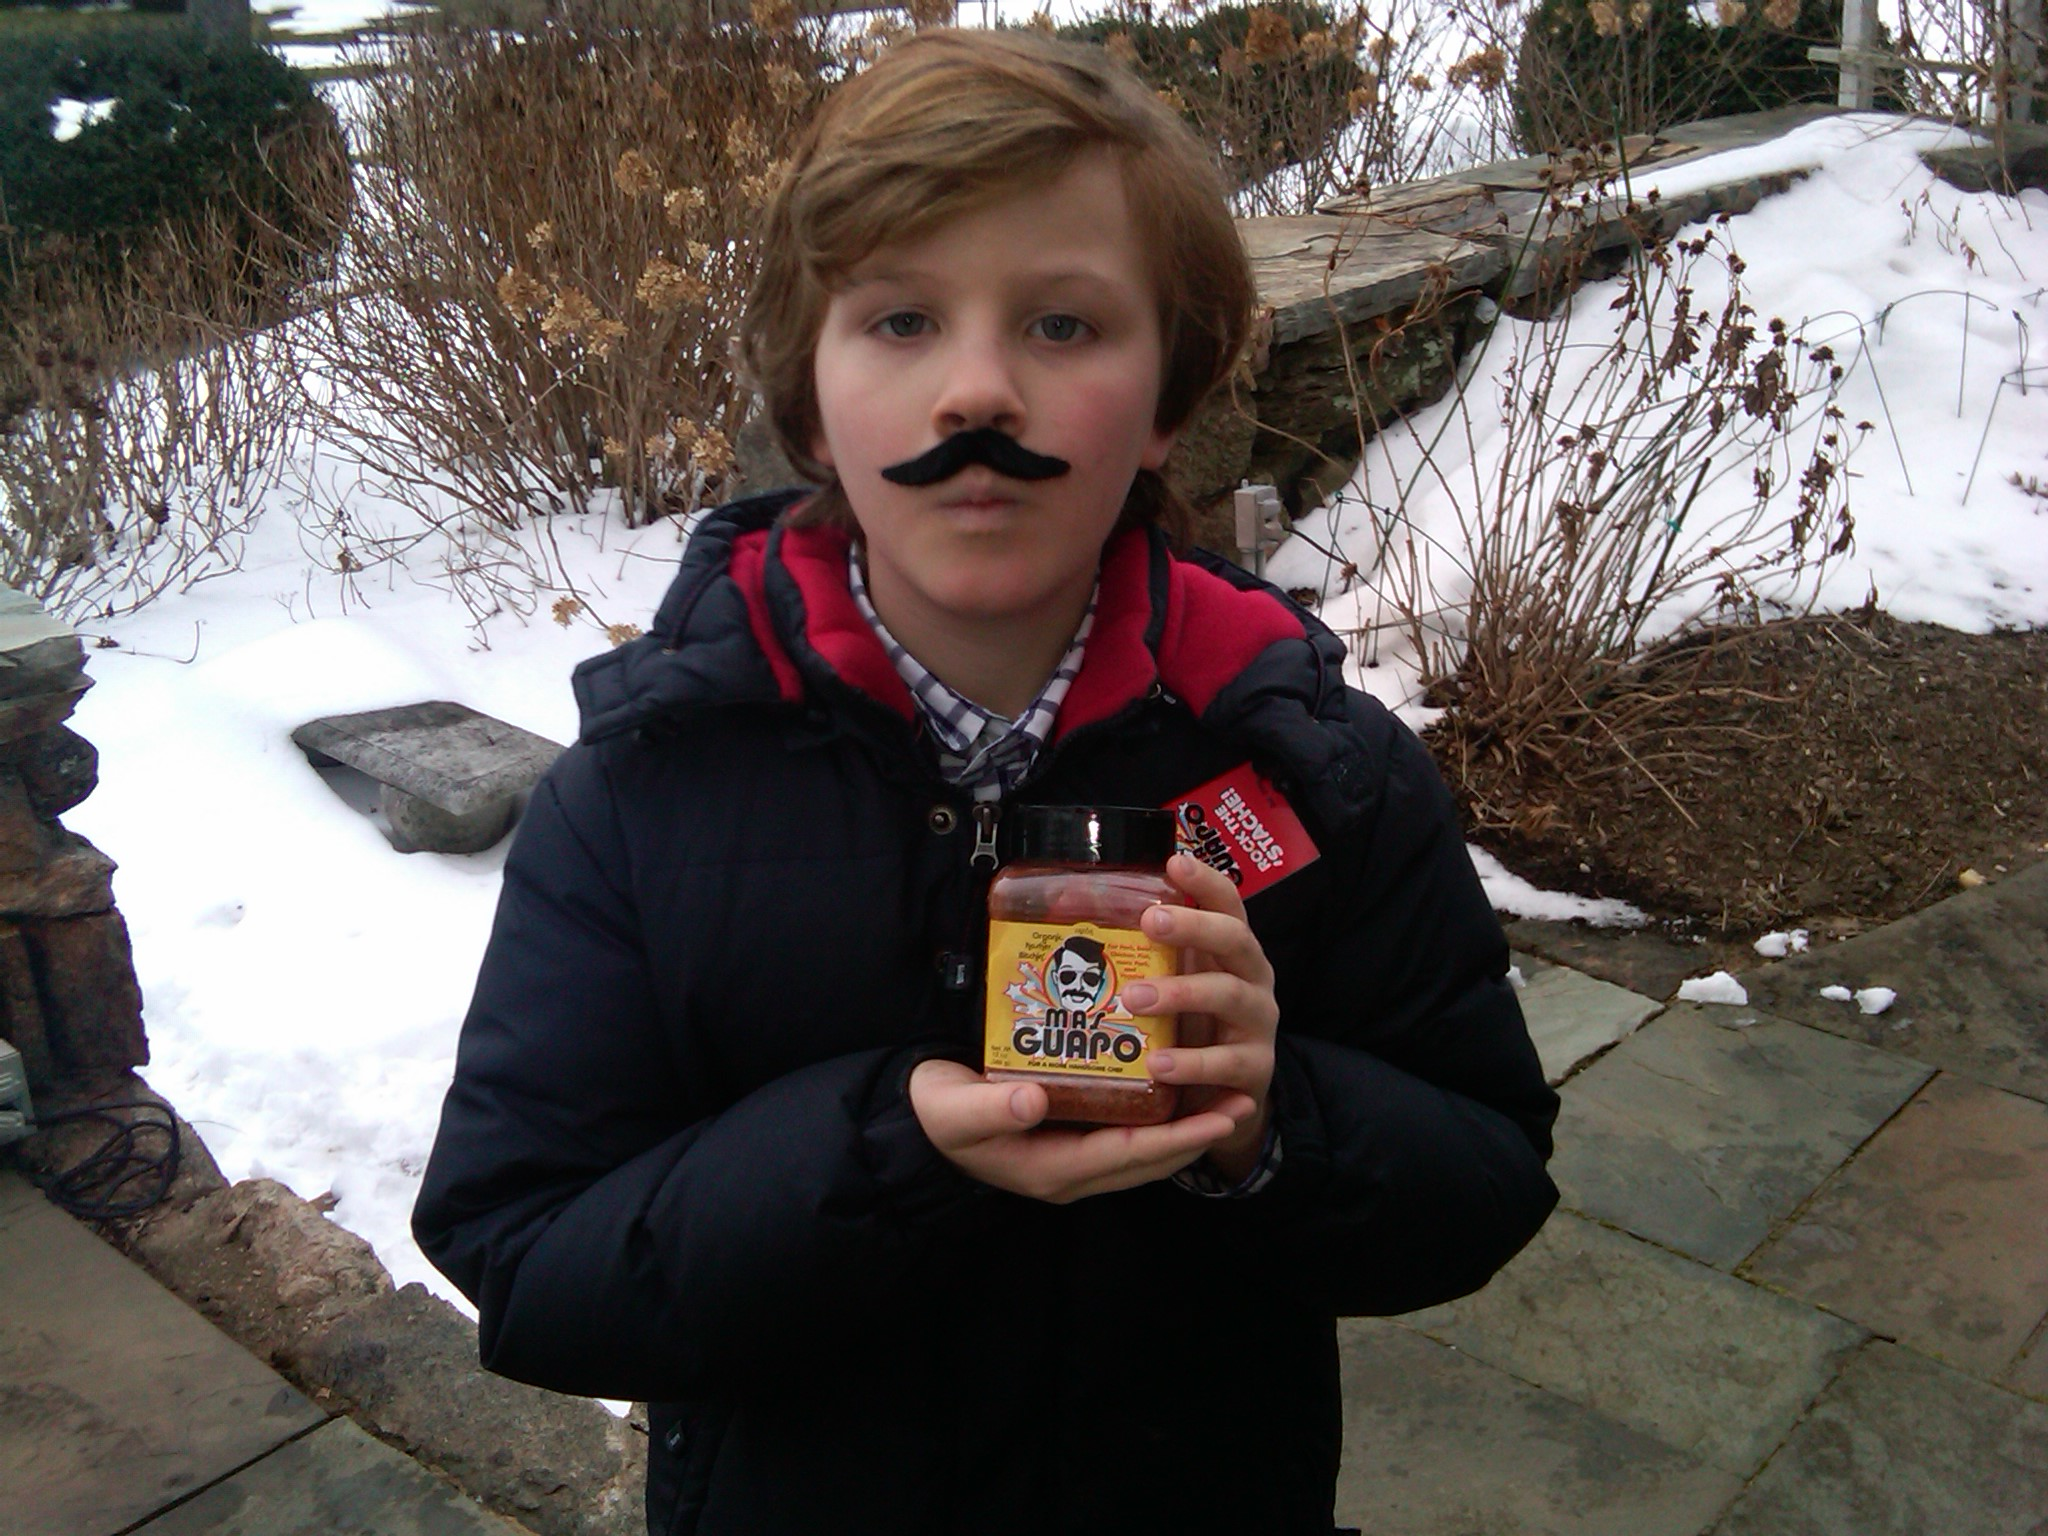 That's a pretty macho 11 year old. Be sure to wear that 'Stache to back to school.